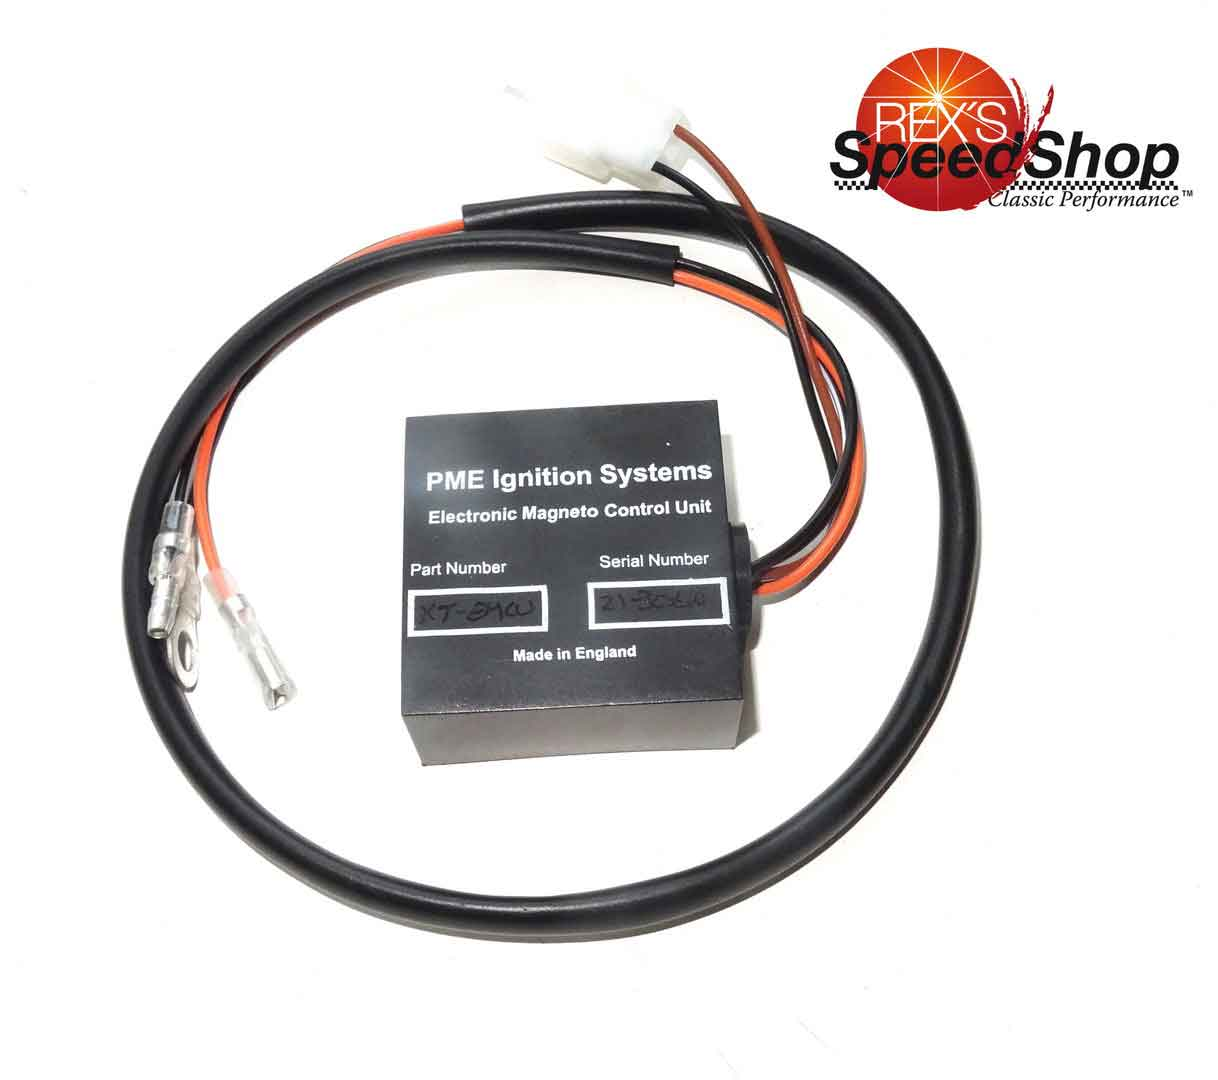 Electronic Ignition coil (courtesy: SpeedShop)